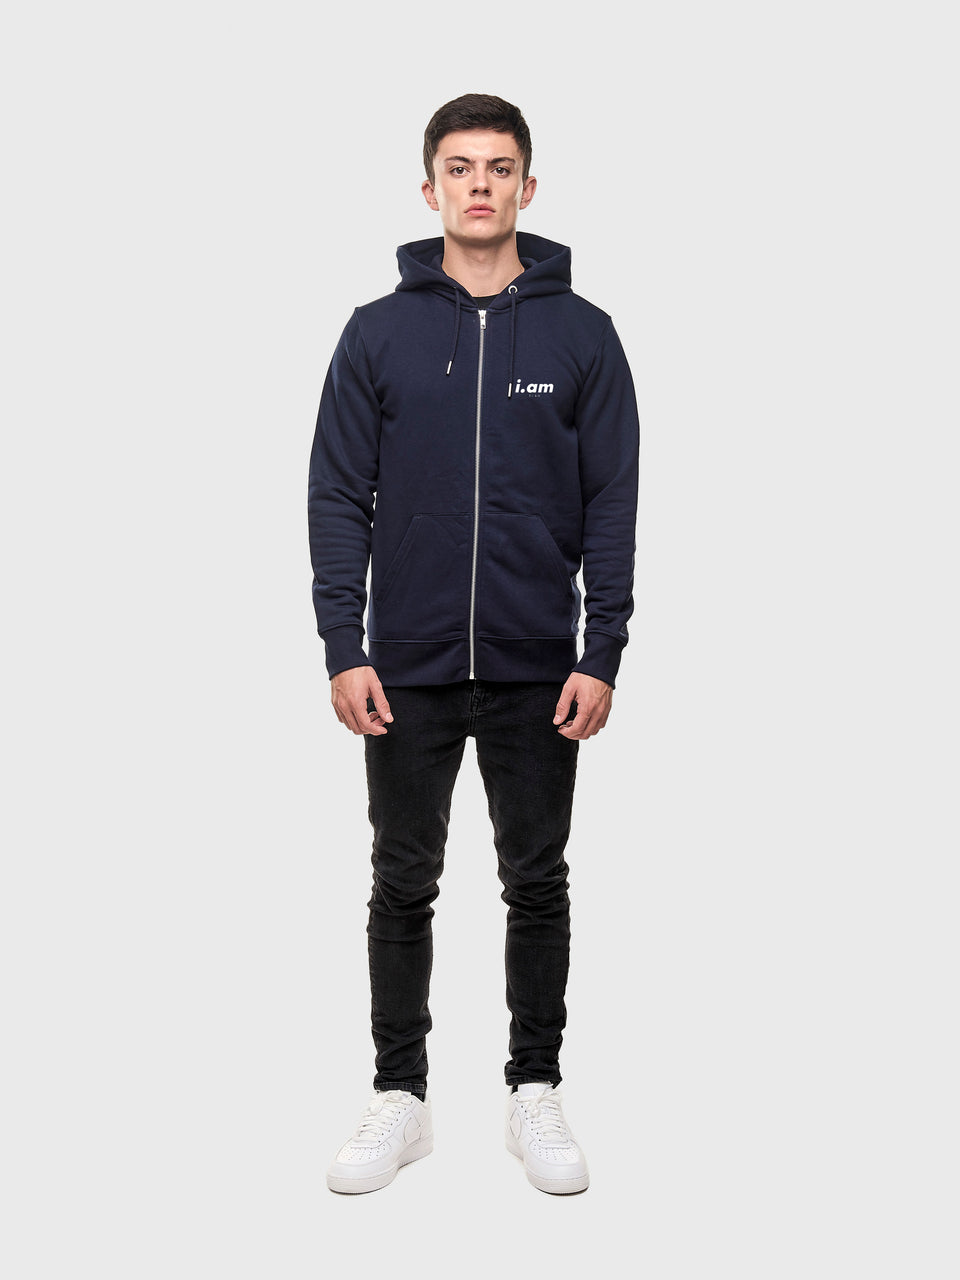 Not a copy - Navy - Unisex zip up hoodie